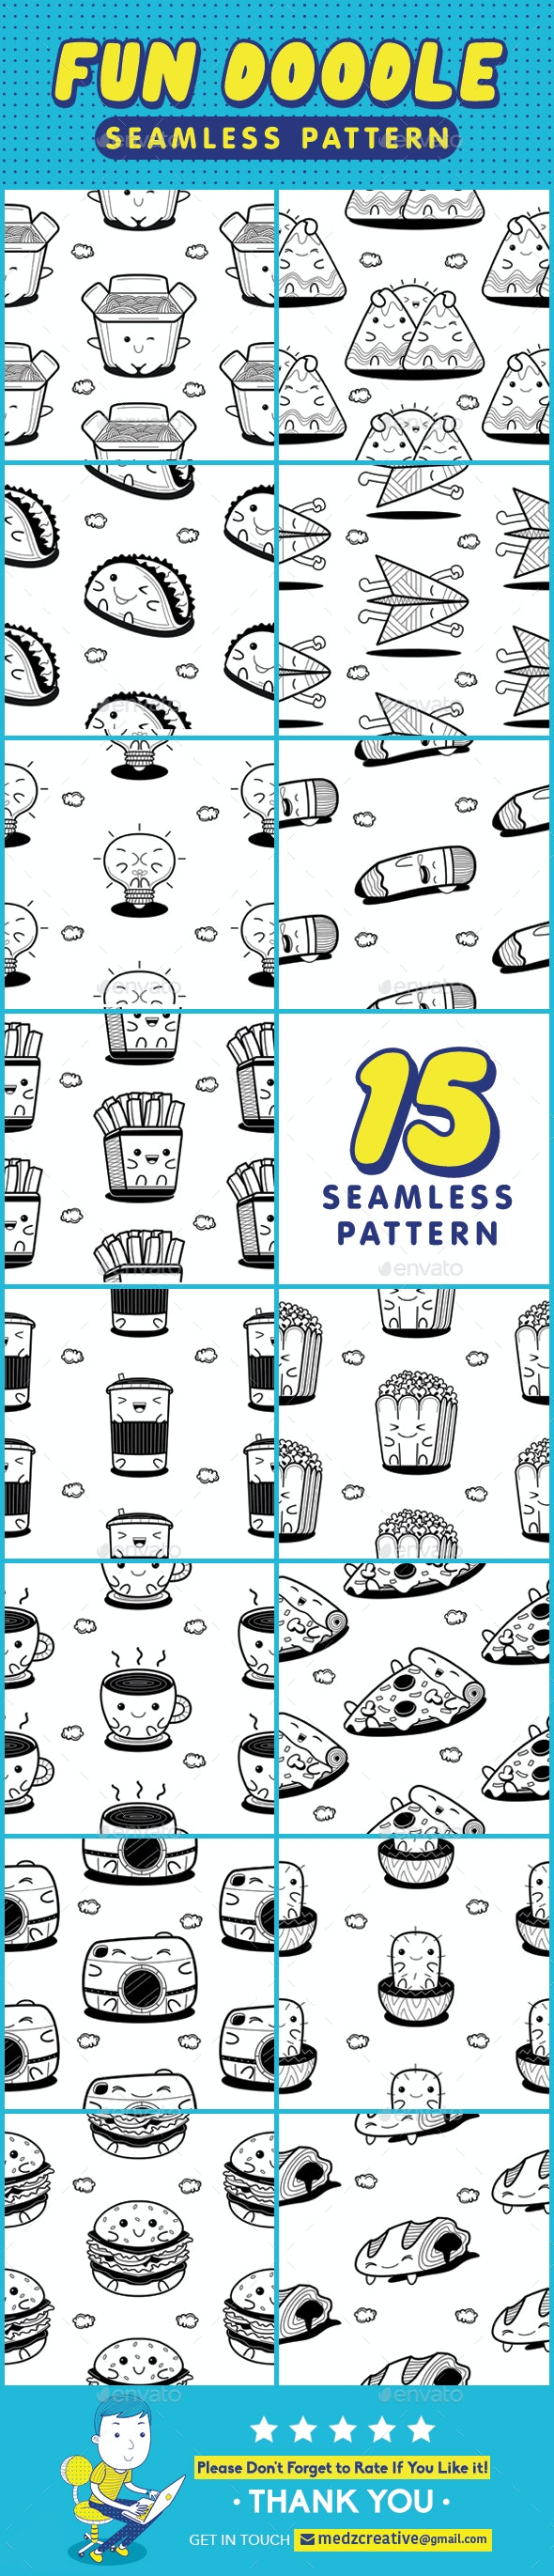 Fun Doodle Seamless Pattern - Patterns Backgrounds